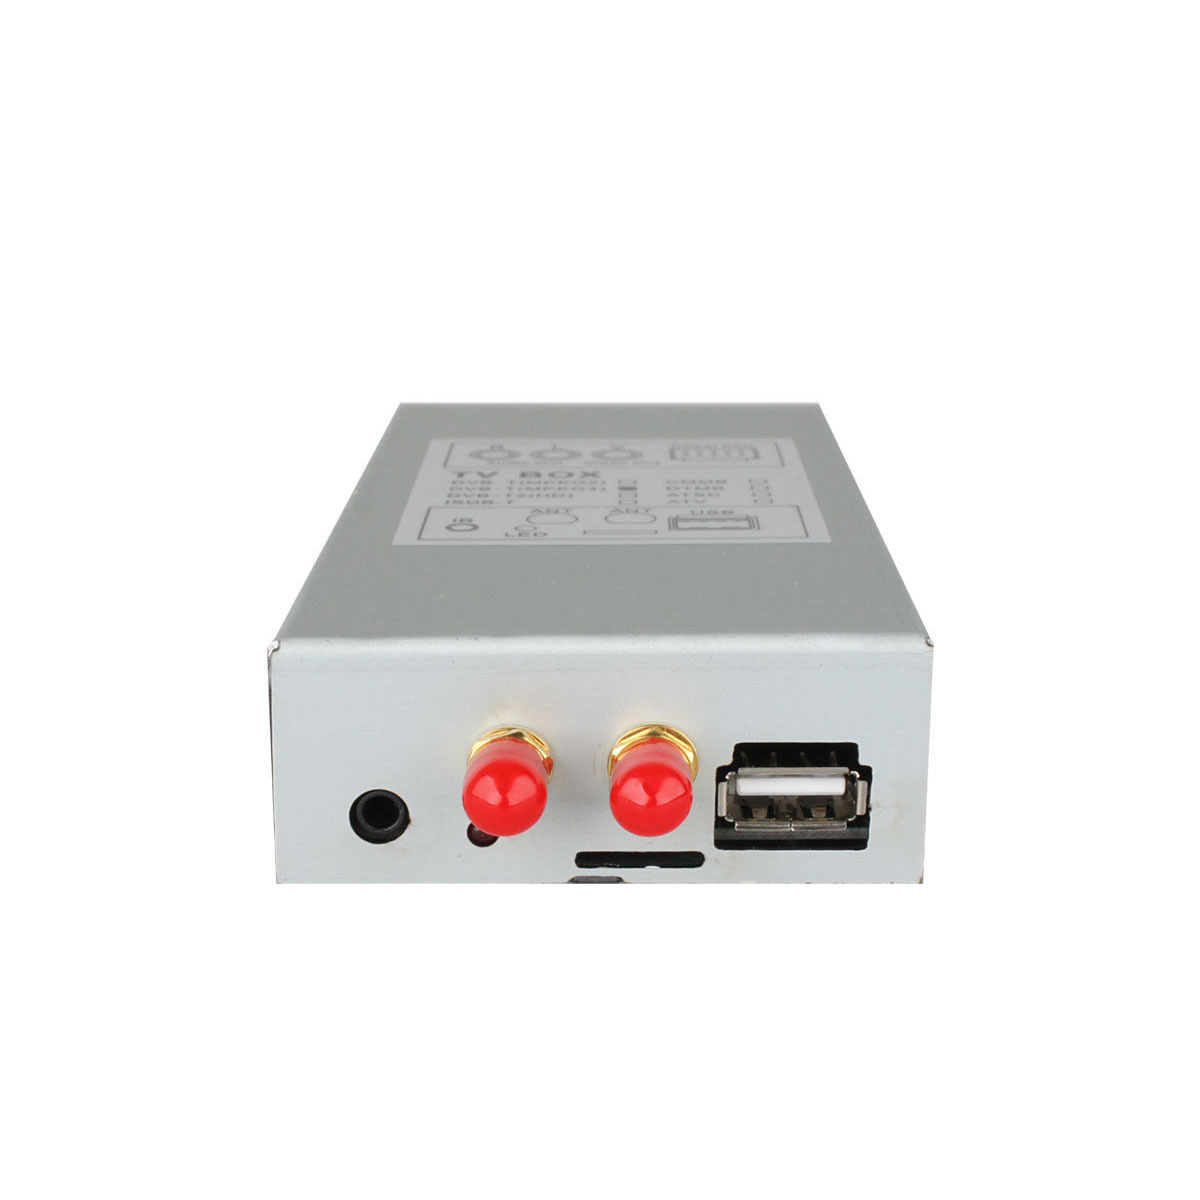 Special DVB-T MPEG4 Digital TV Box For Ownice Car DVD.The Item Just Fit for our Car DVD our discovery island 4 dvd